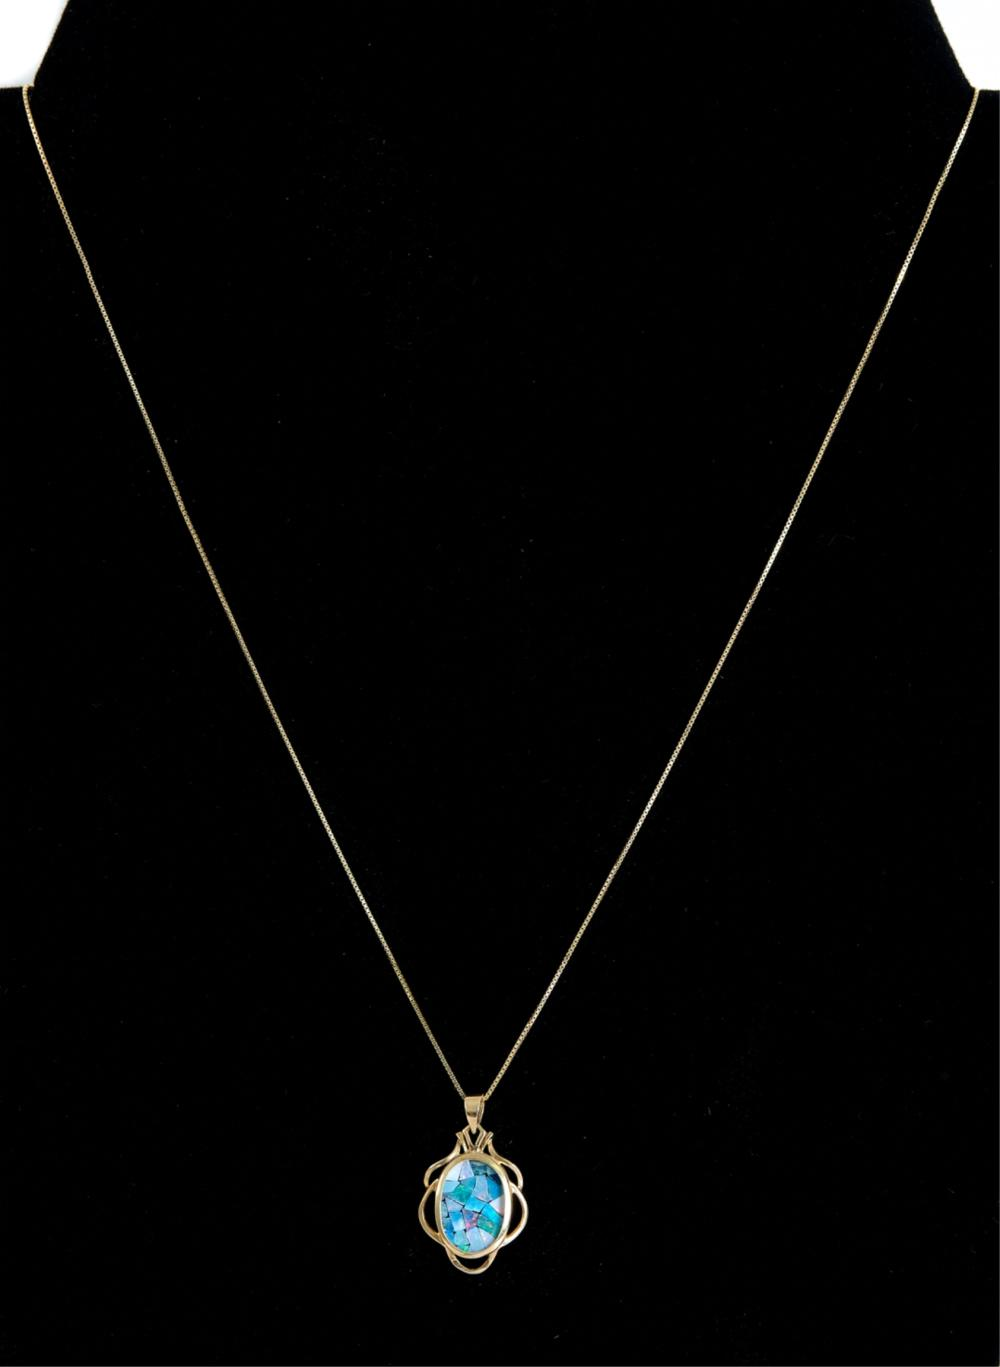 14k Yellow Gold Mosaic Opal Pendant Necklace